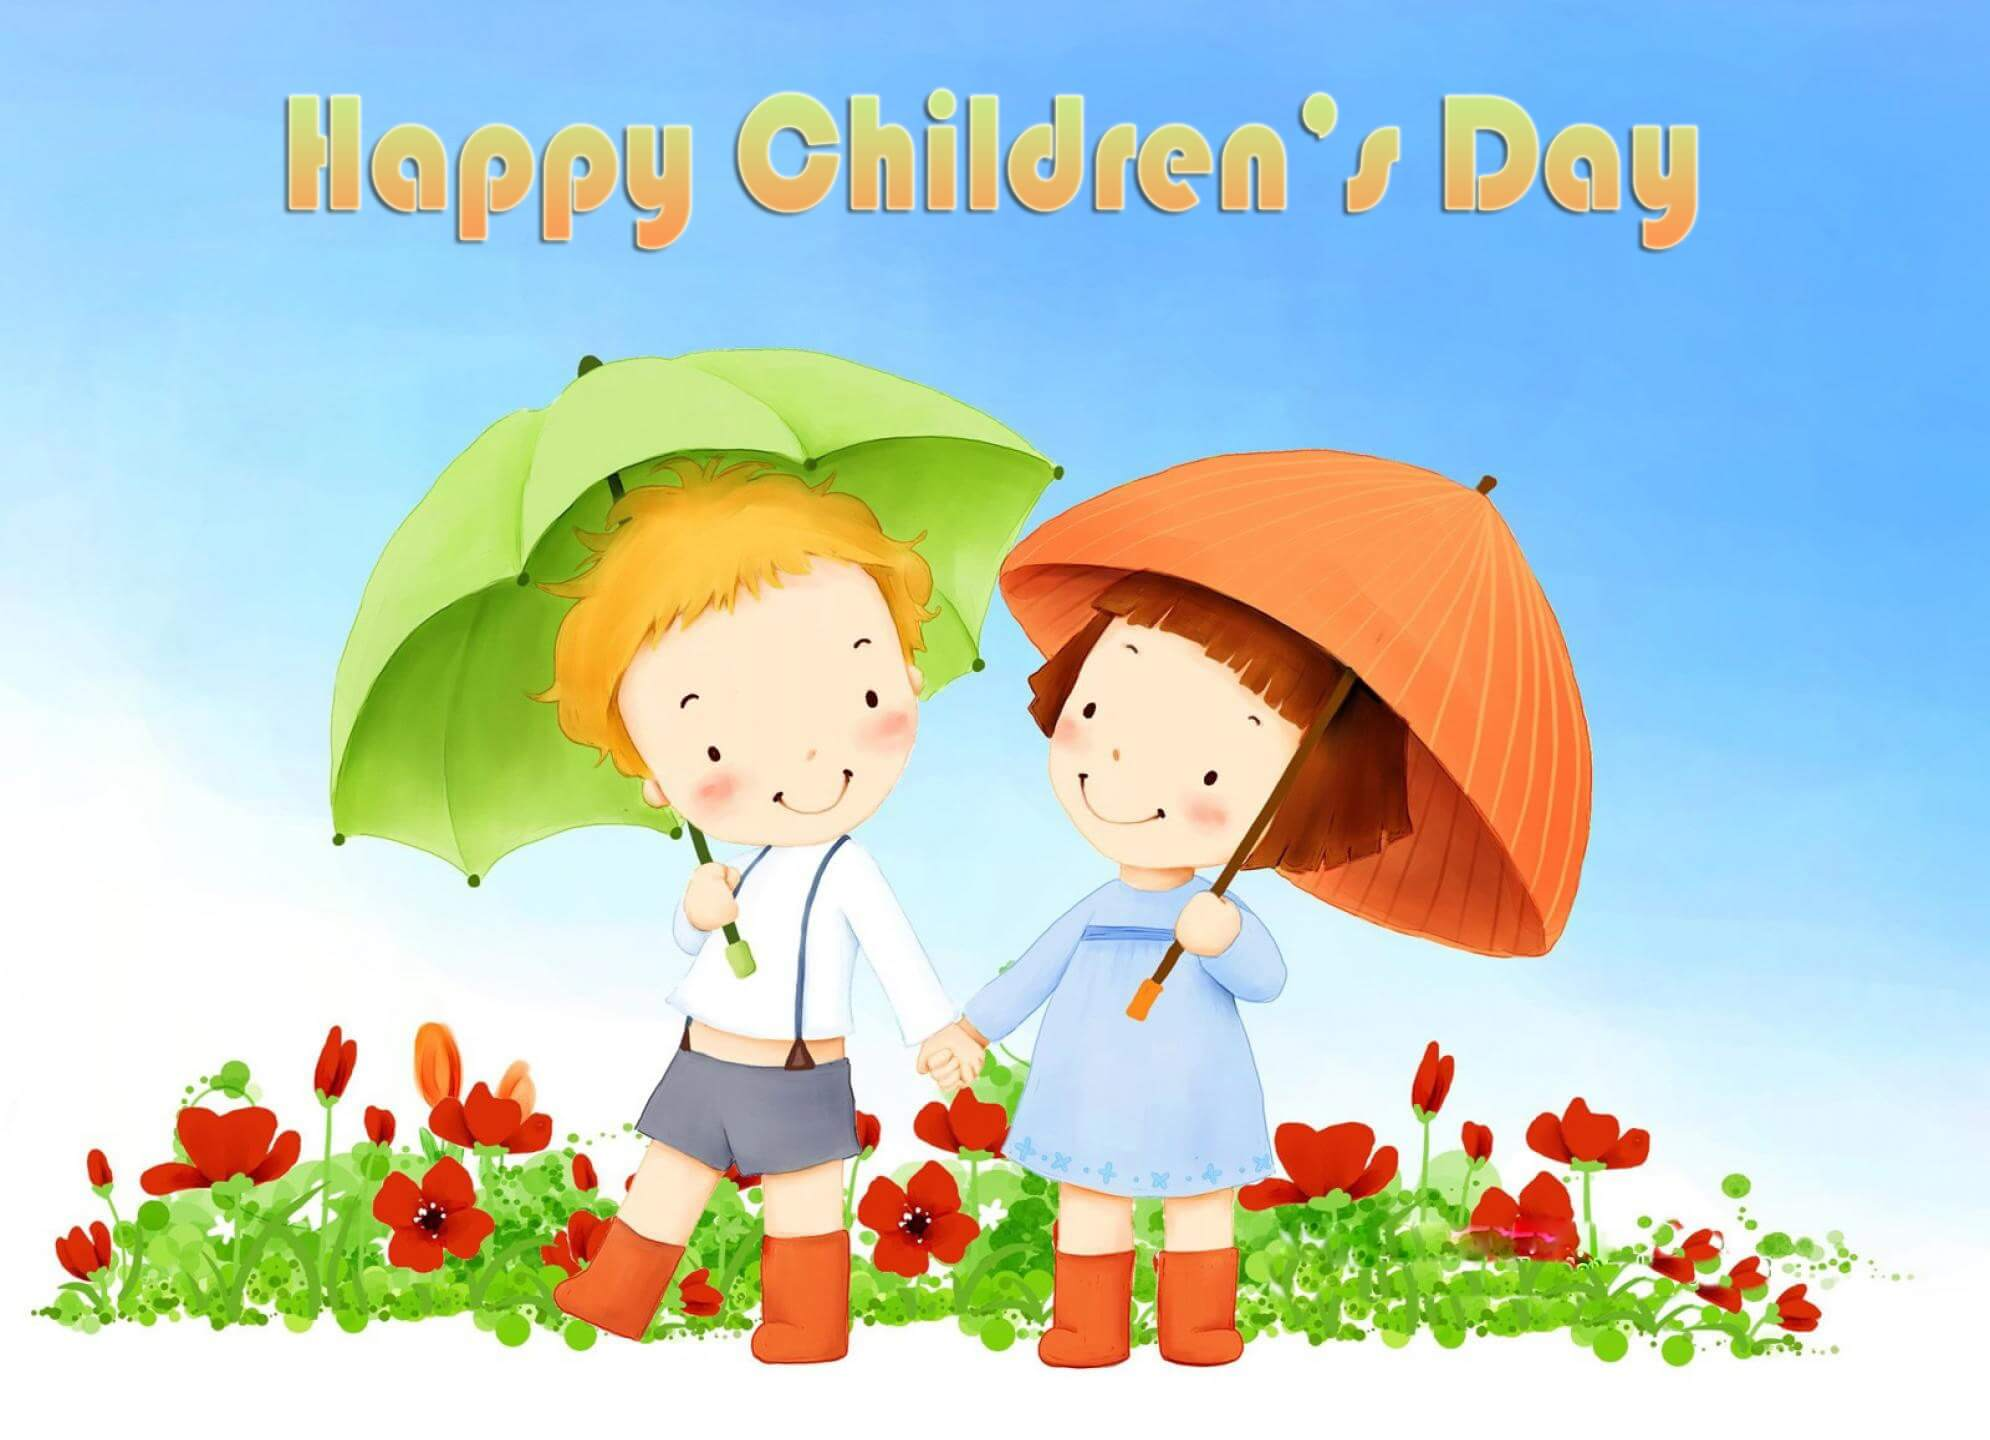 happy childrens day wallpaper desktop pc